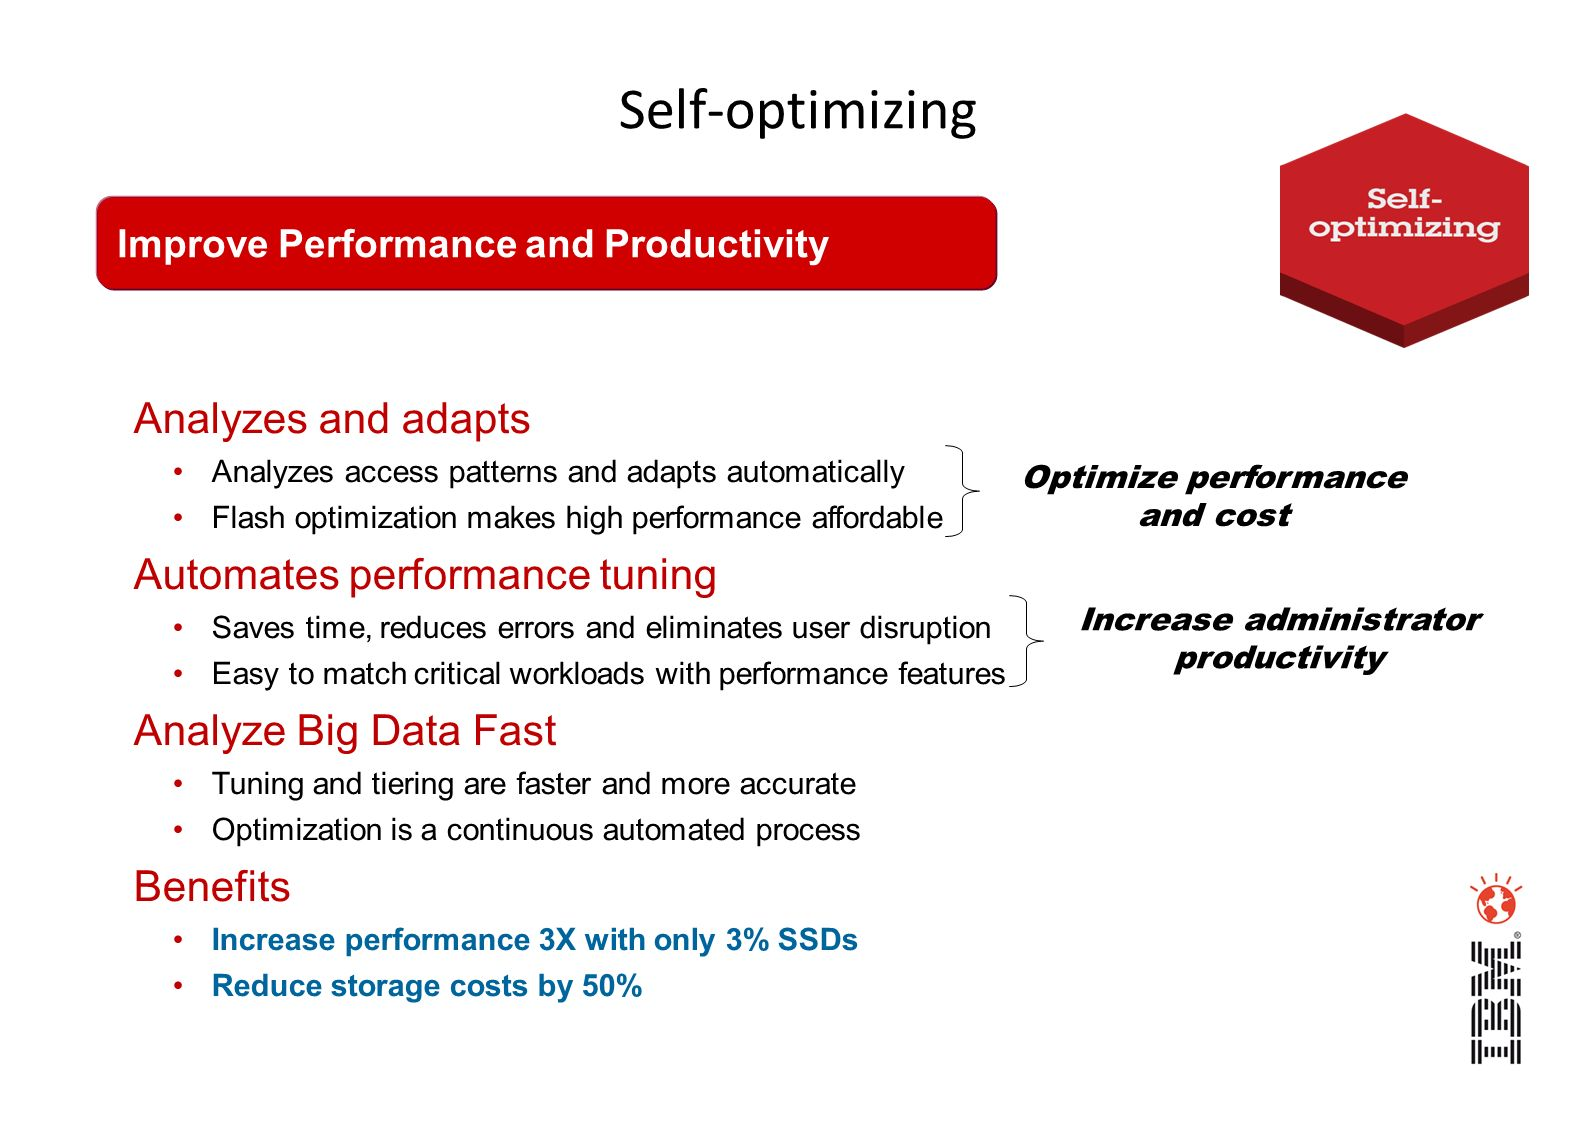 Optimize performance and cost Increase administrator productivity